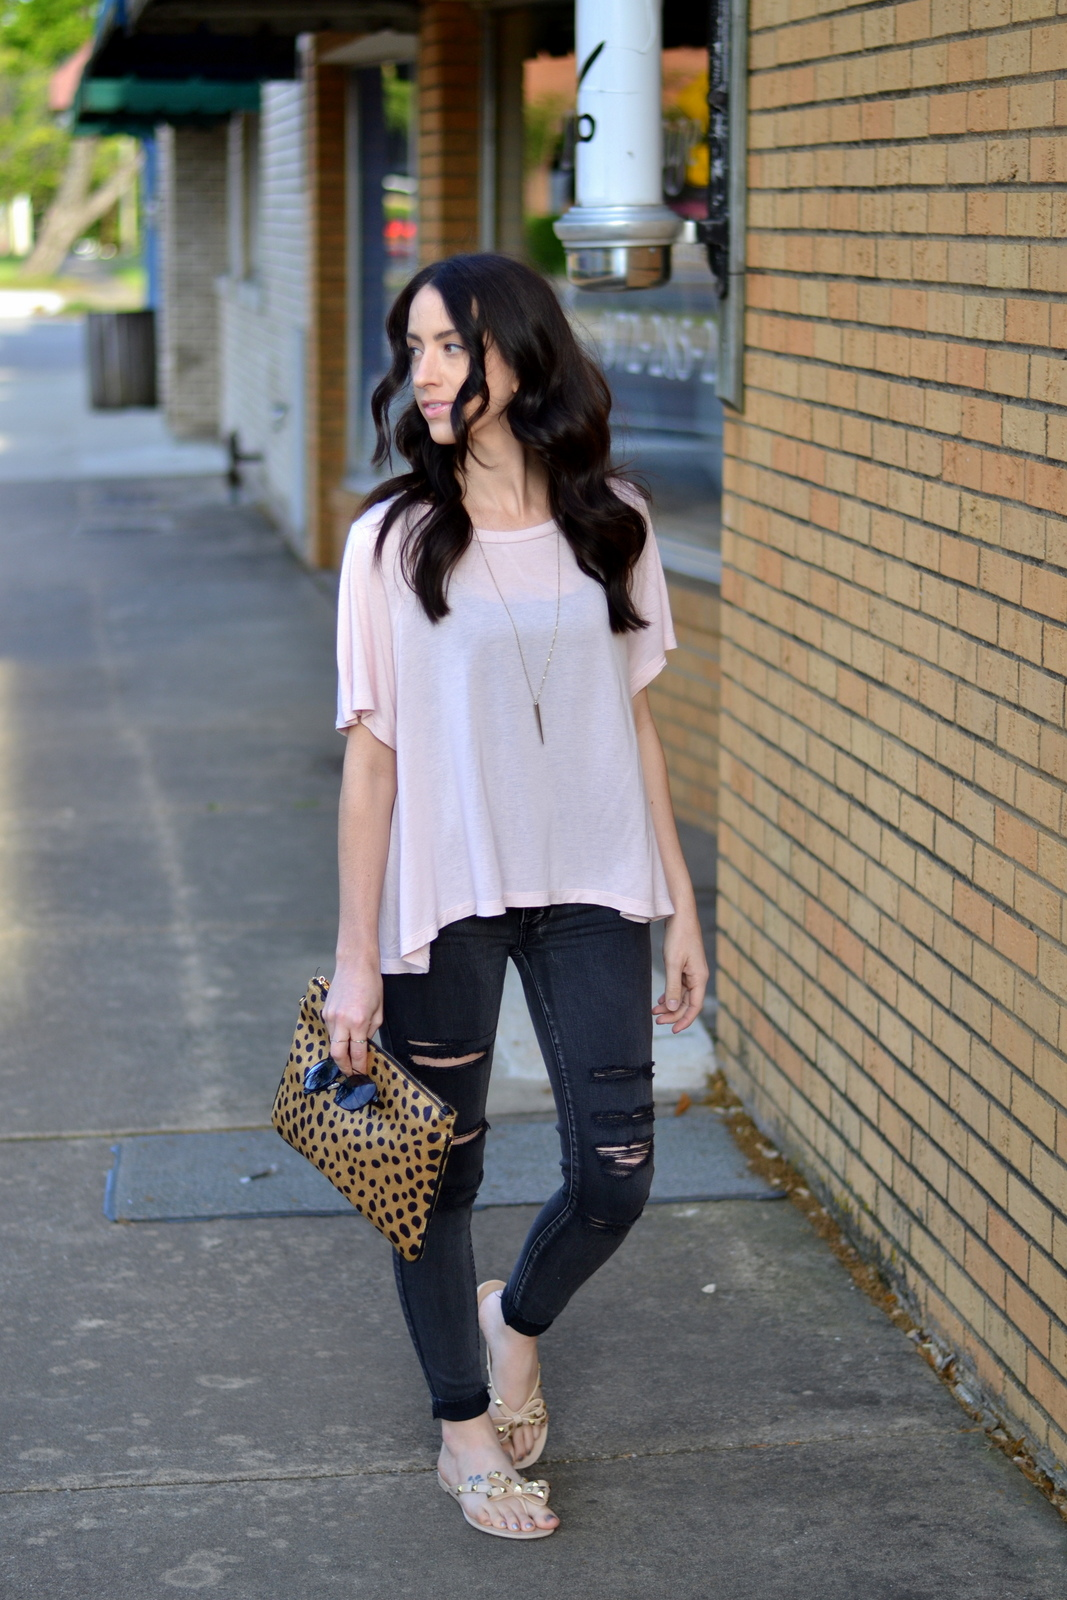 Dressing up a casual date night with leopard clutch and gold accessories